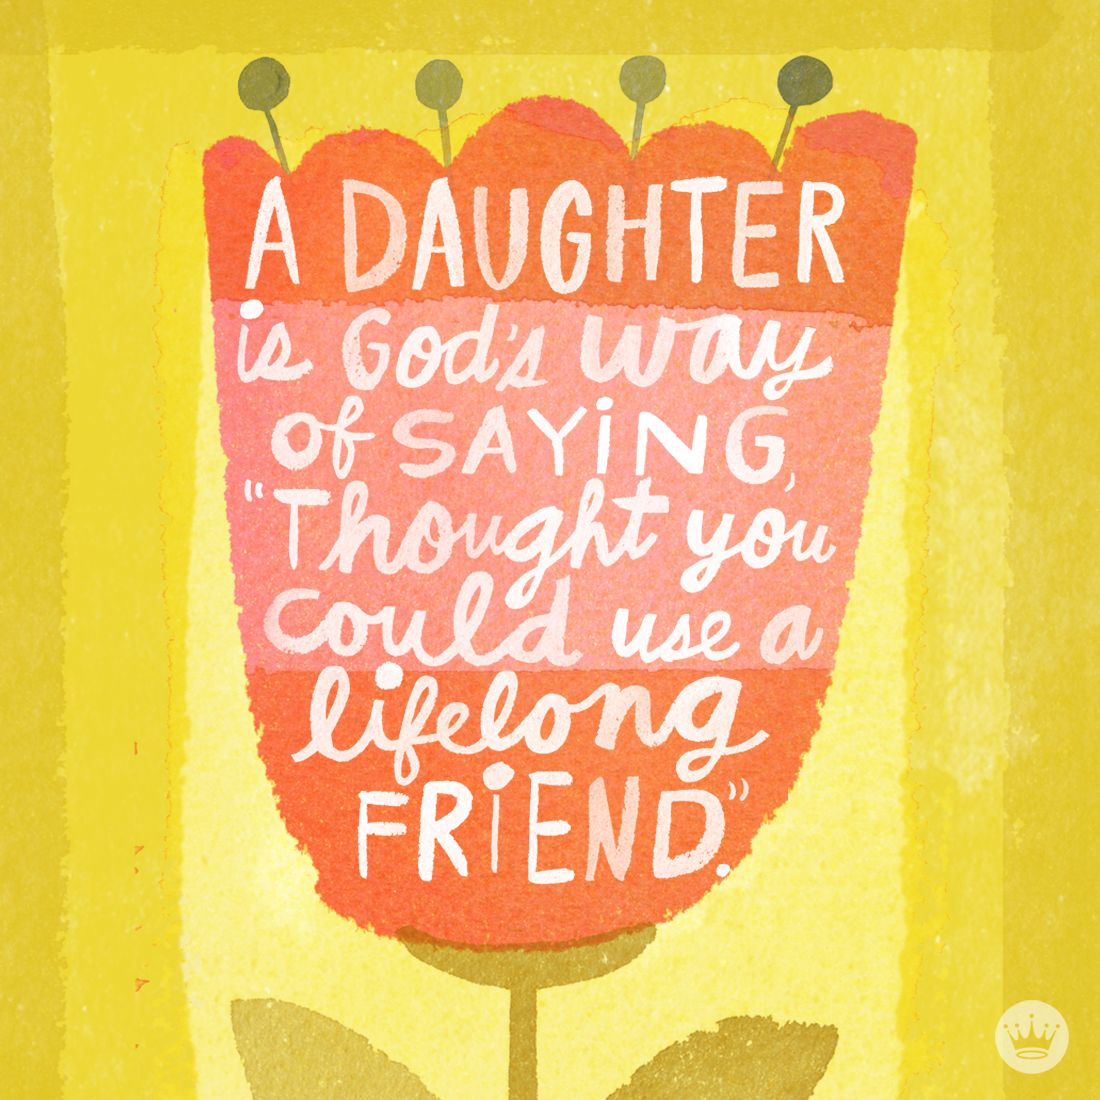 Beautiful quote about motherhood and daughters from